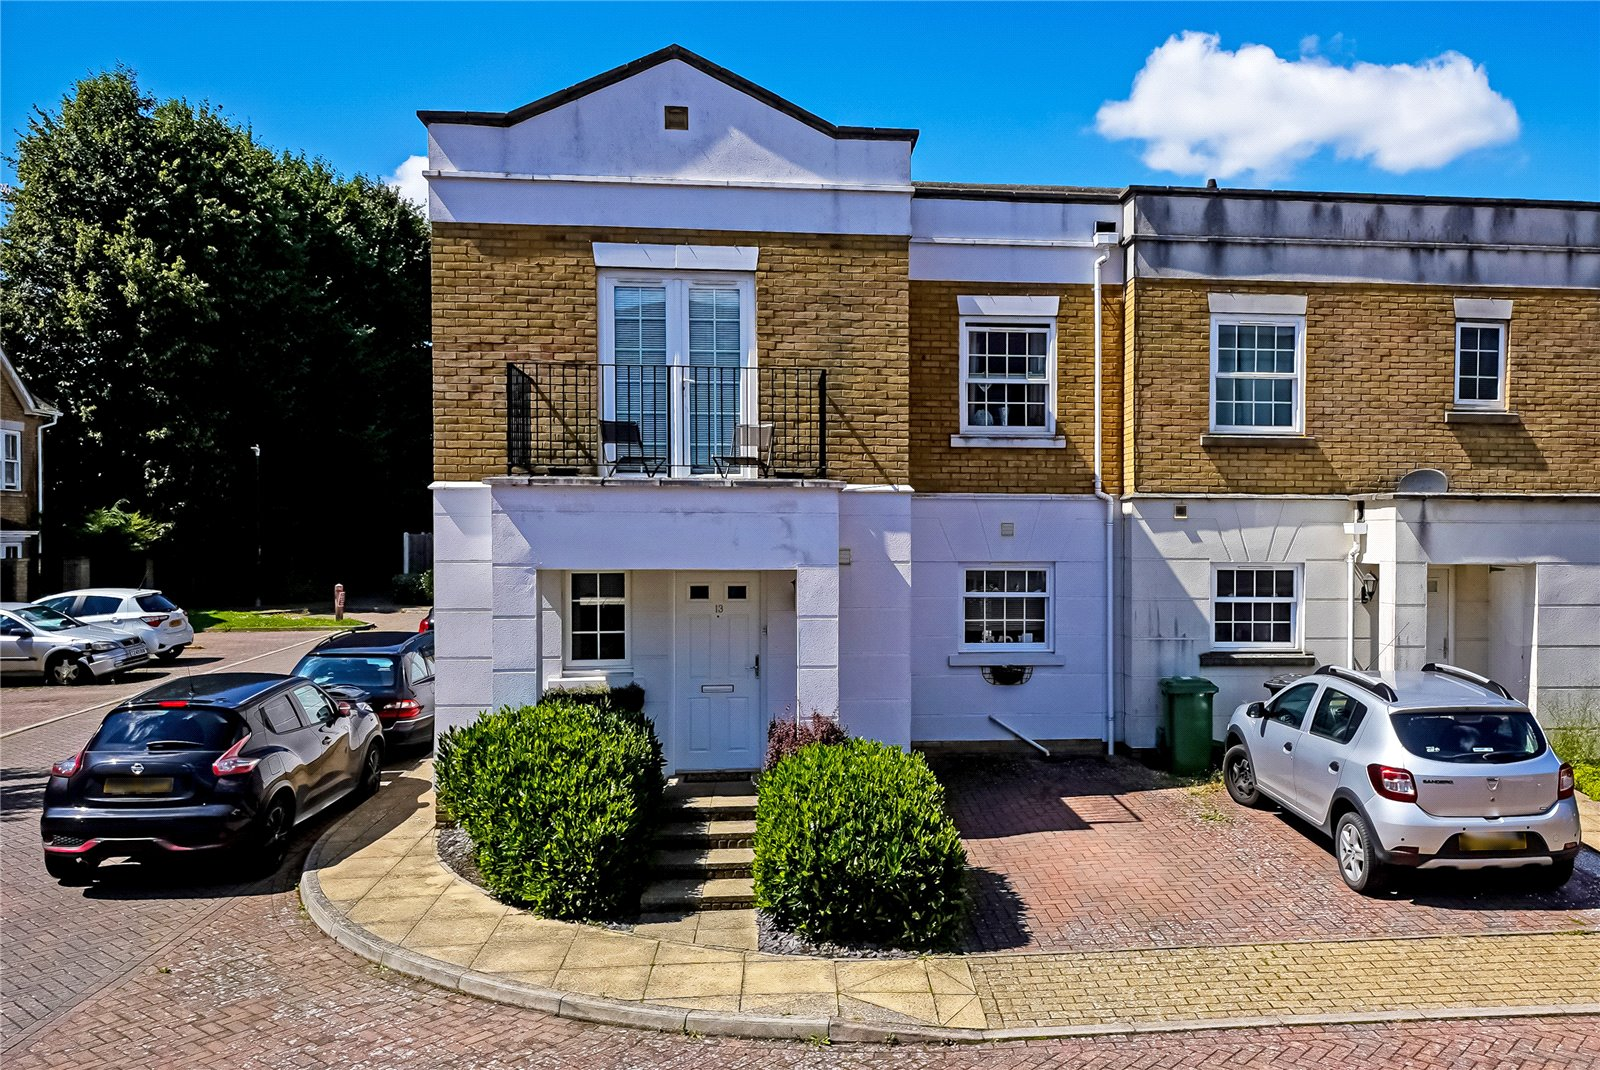 3 bed house for sale in Coriander Drive, Maidstone, ME16